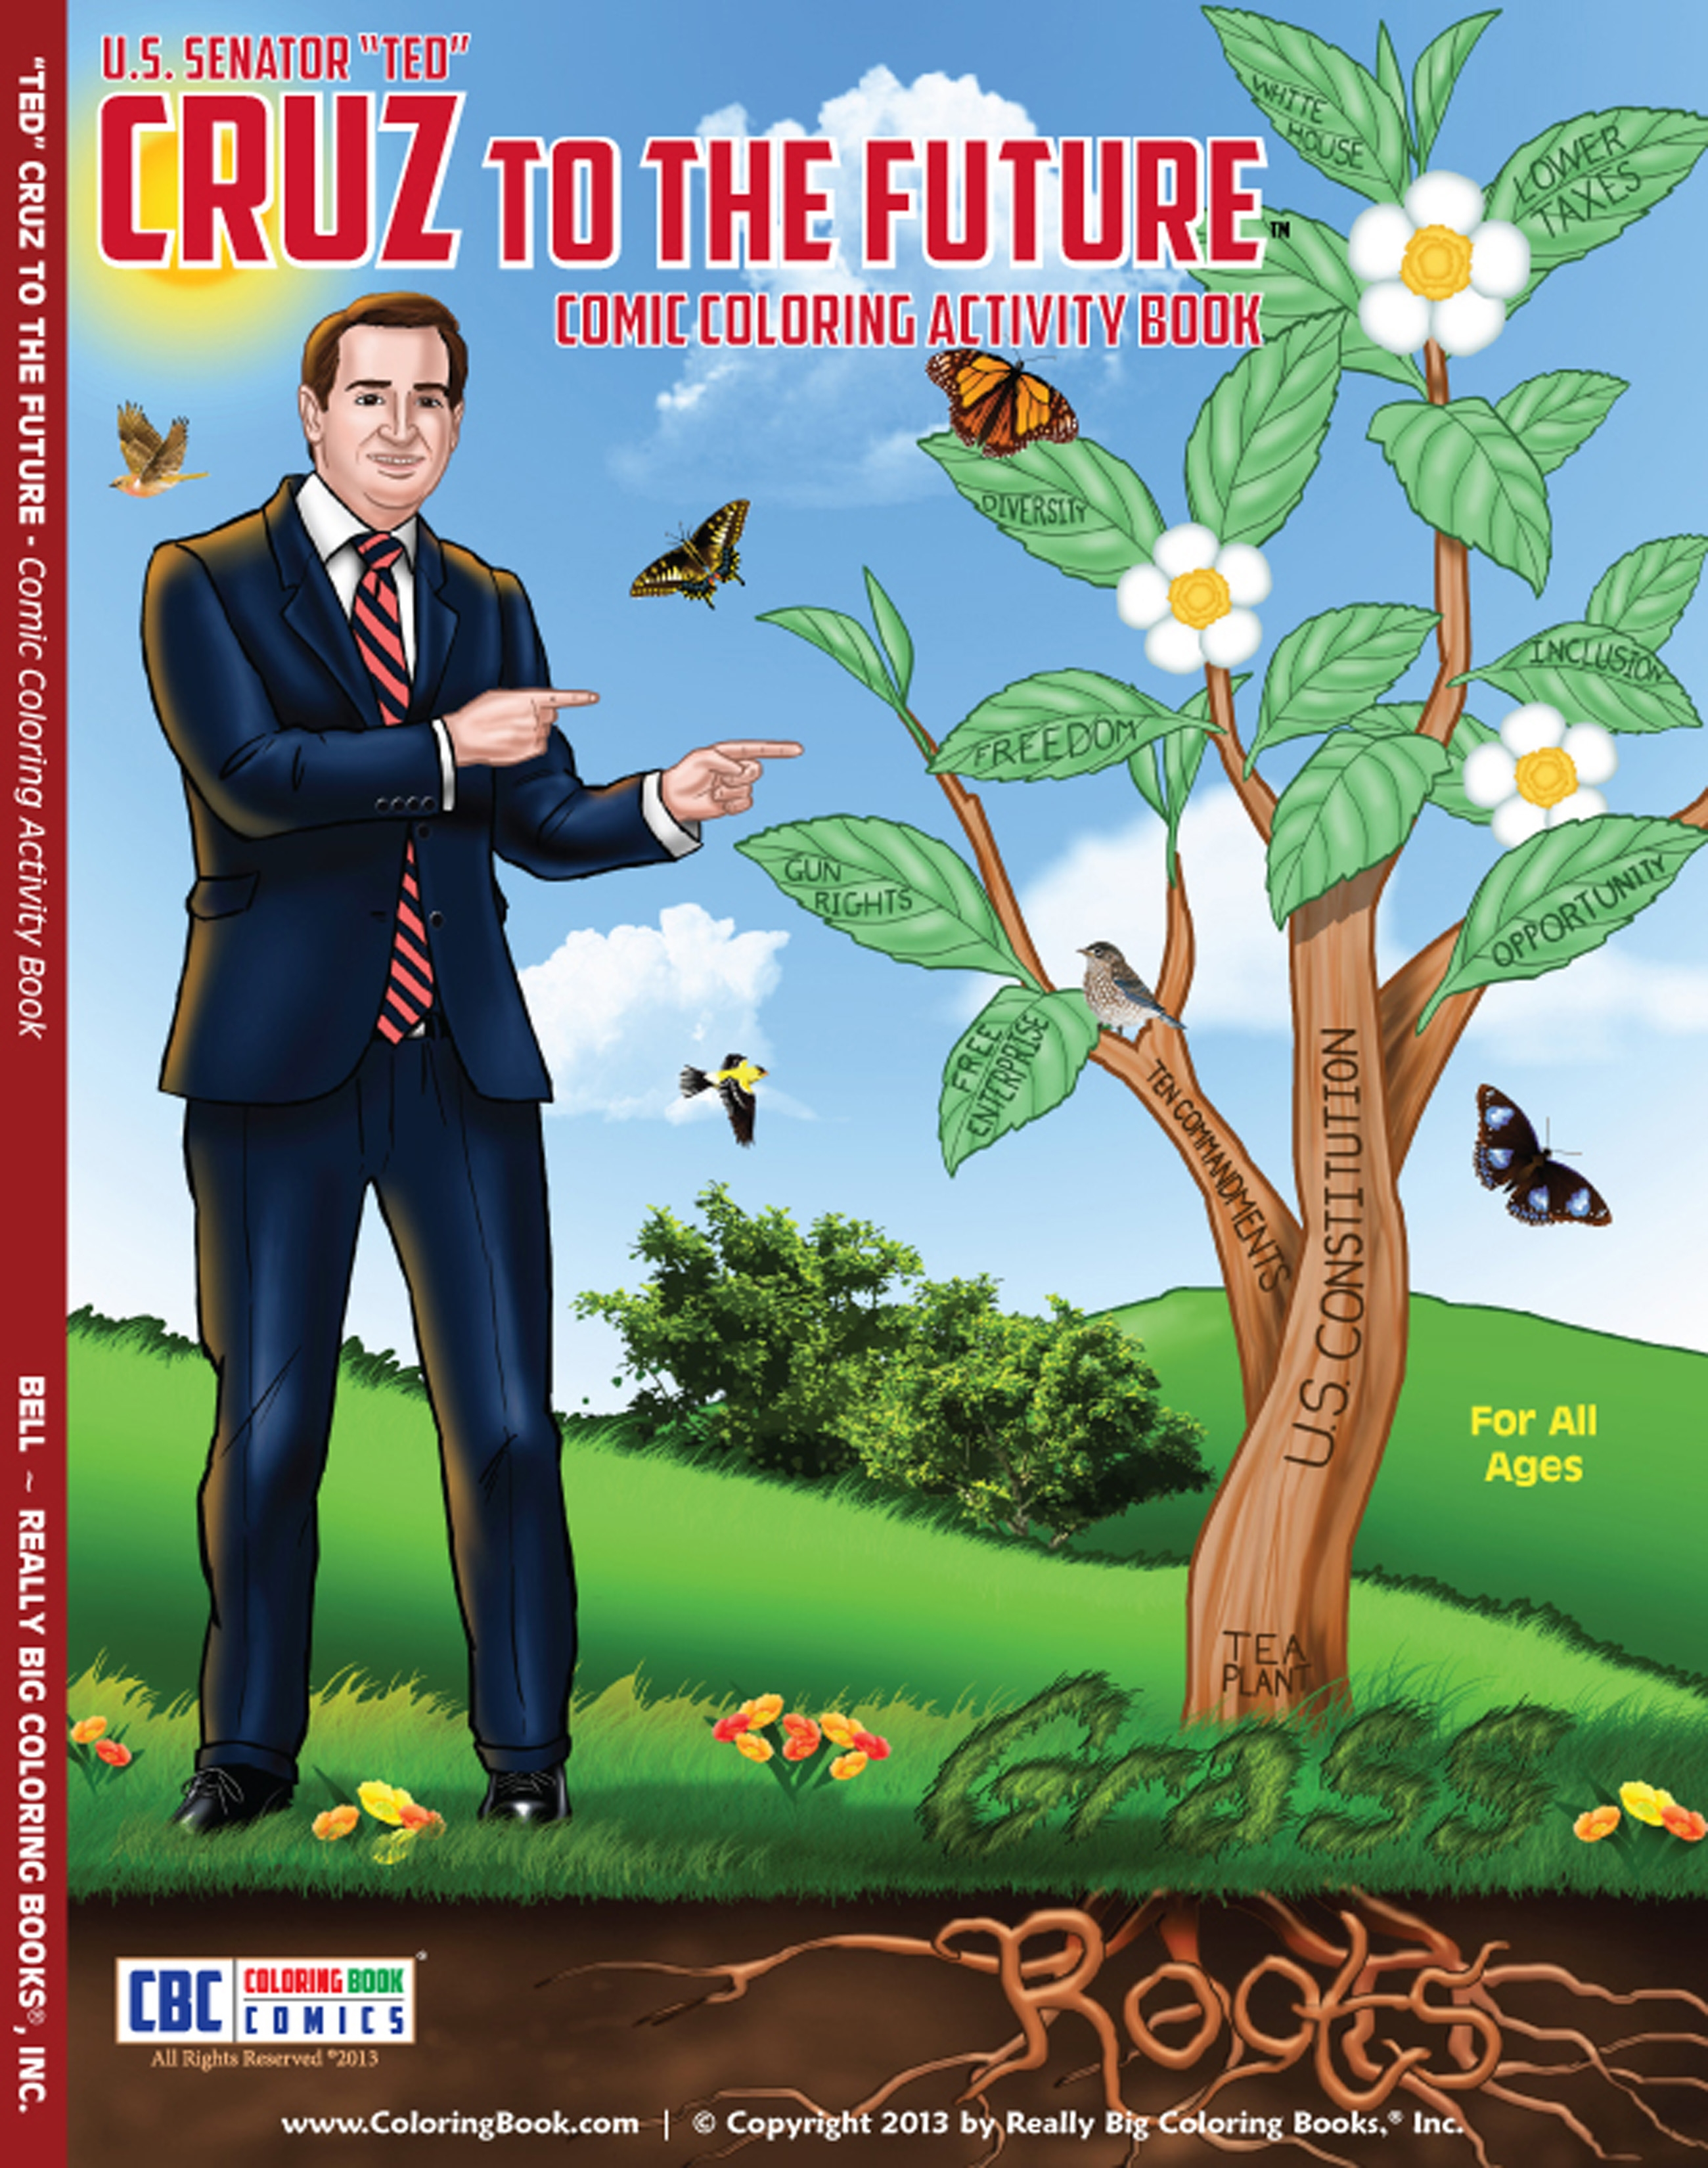 Texas Coloring Book Featuring Ted Cruz Selling Fast